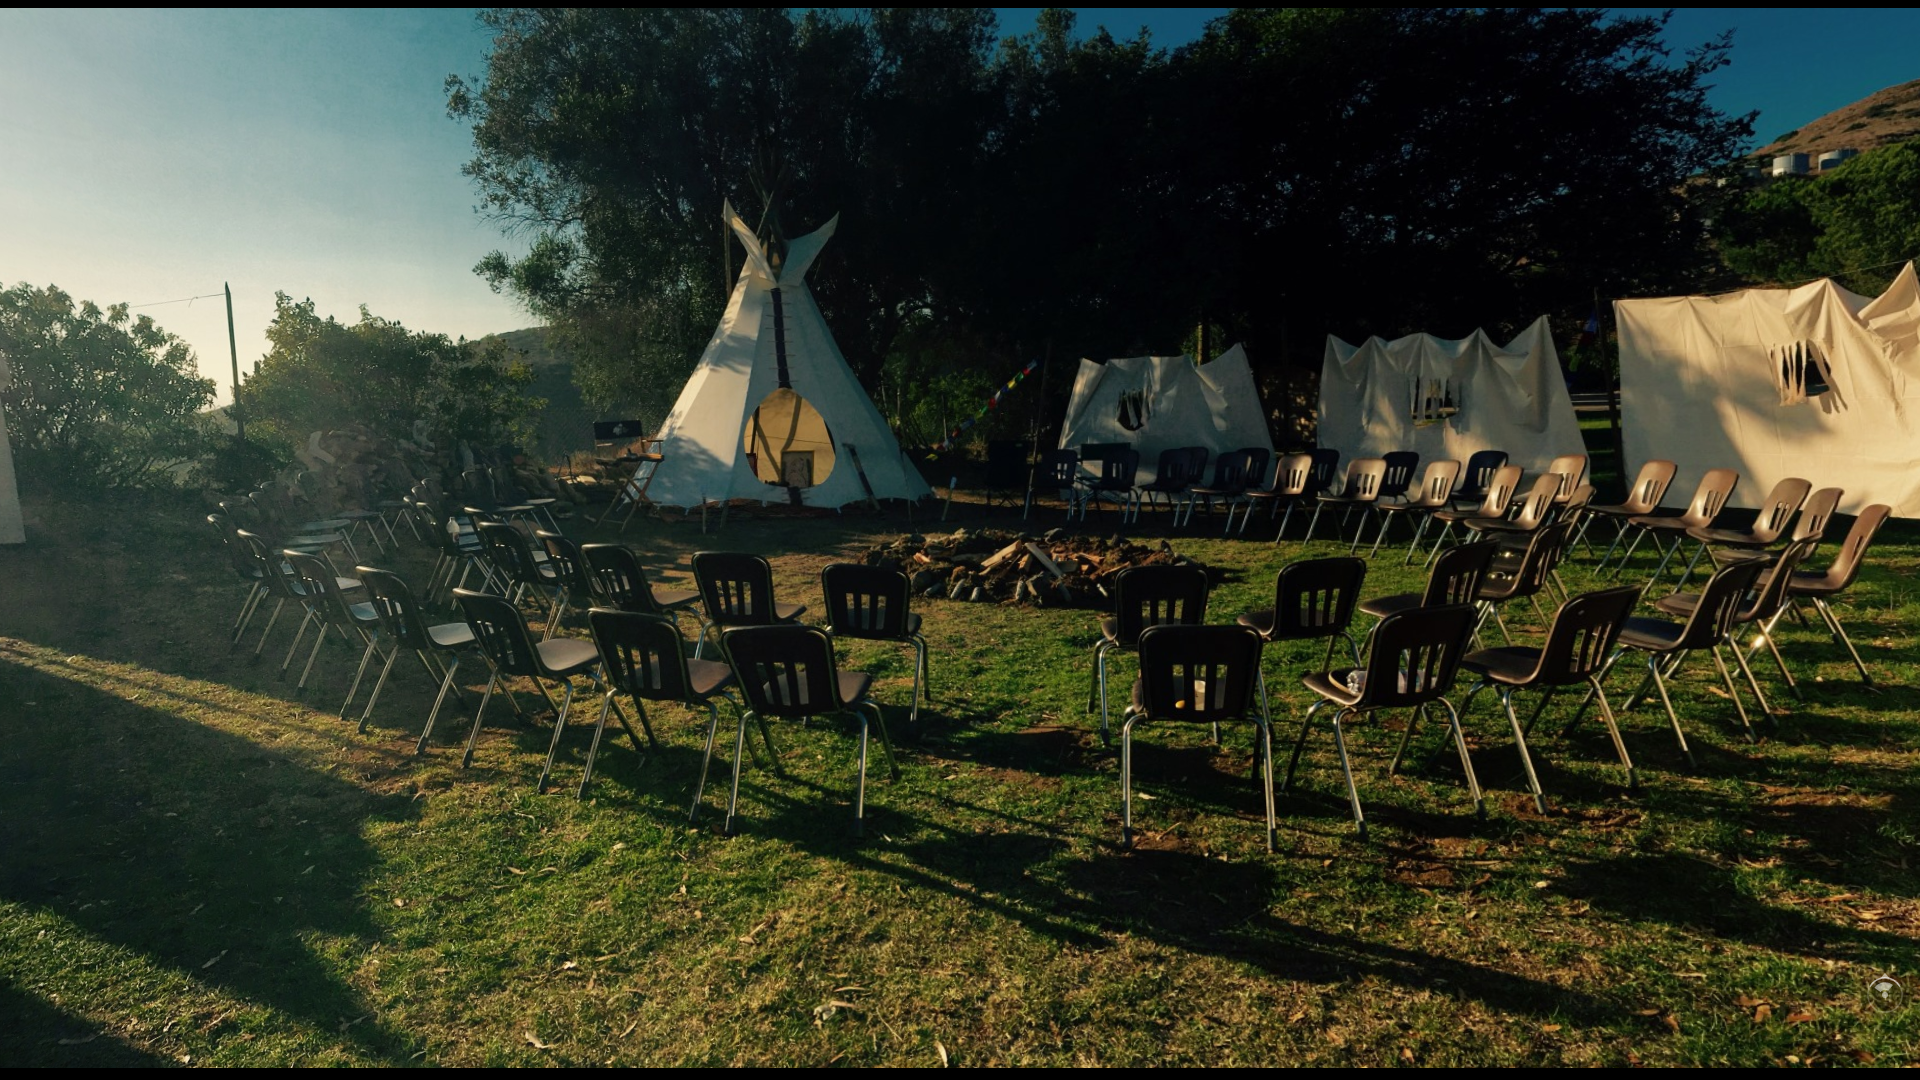 The Newly inspired Intention-Tipi on the lower field - now called the TPC (Tipi Container) was created to supplement our existing indoor container